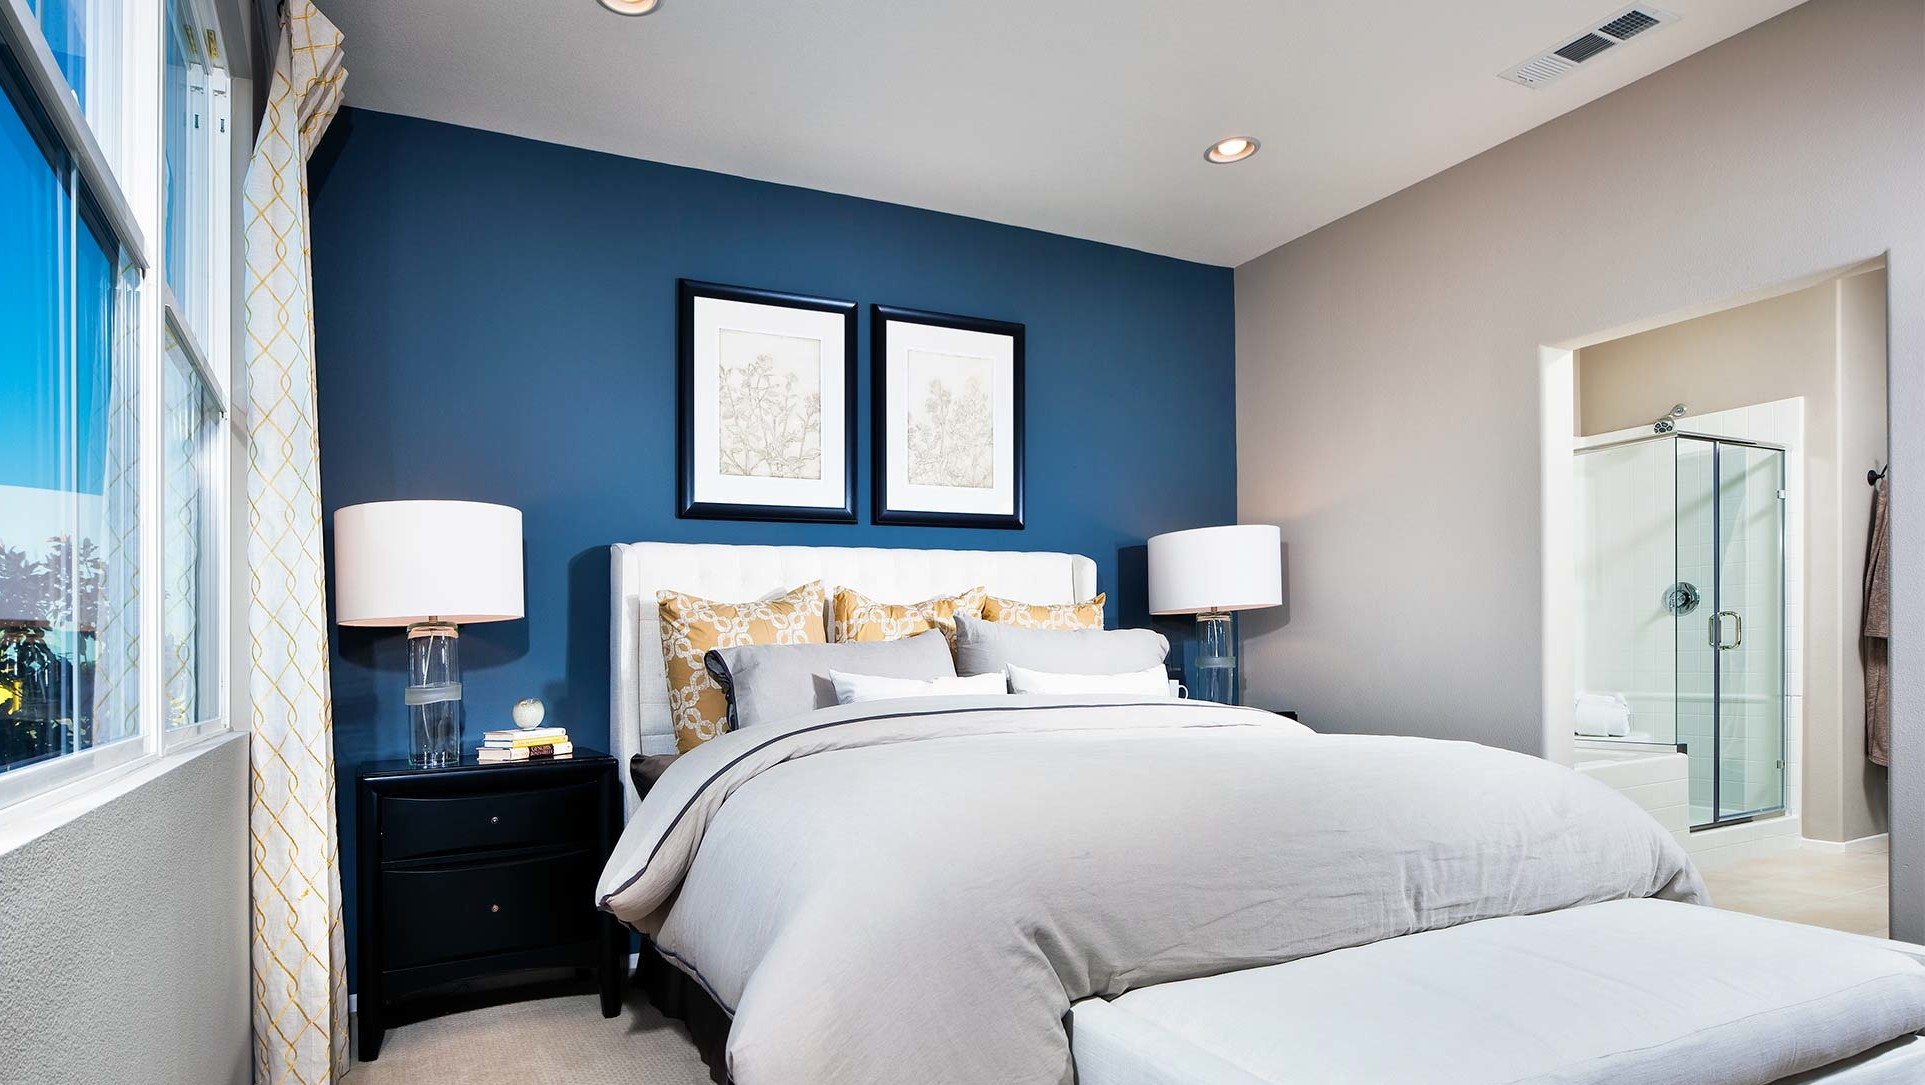 Best ideas about Accent Wall Painting . Save or Pin You re Doing It Wrong Painting an Accent Wall Now.